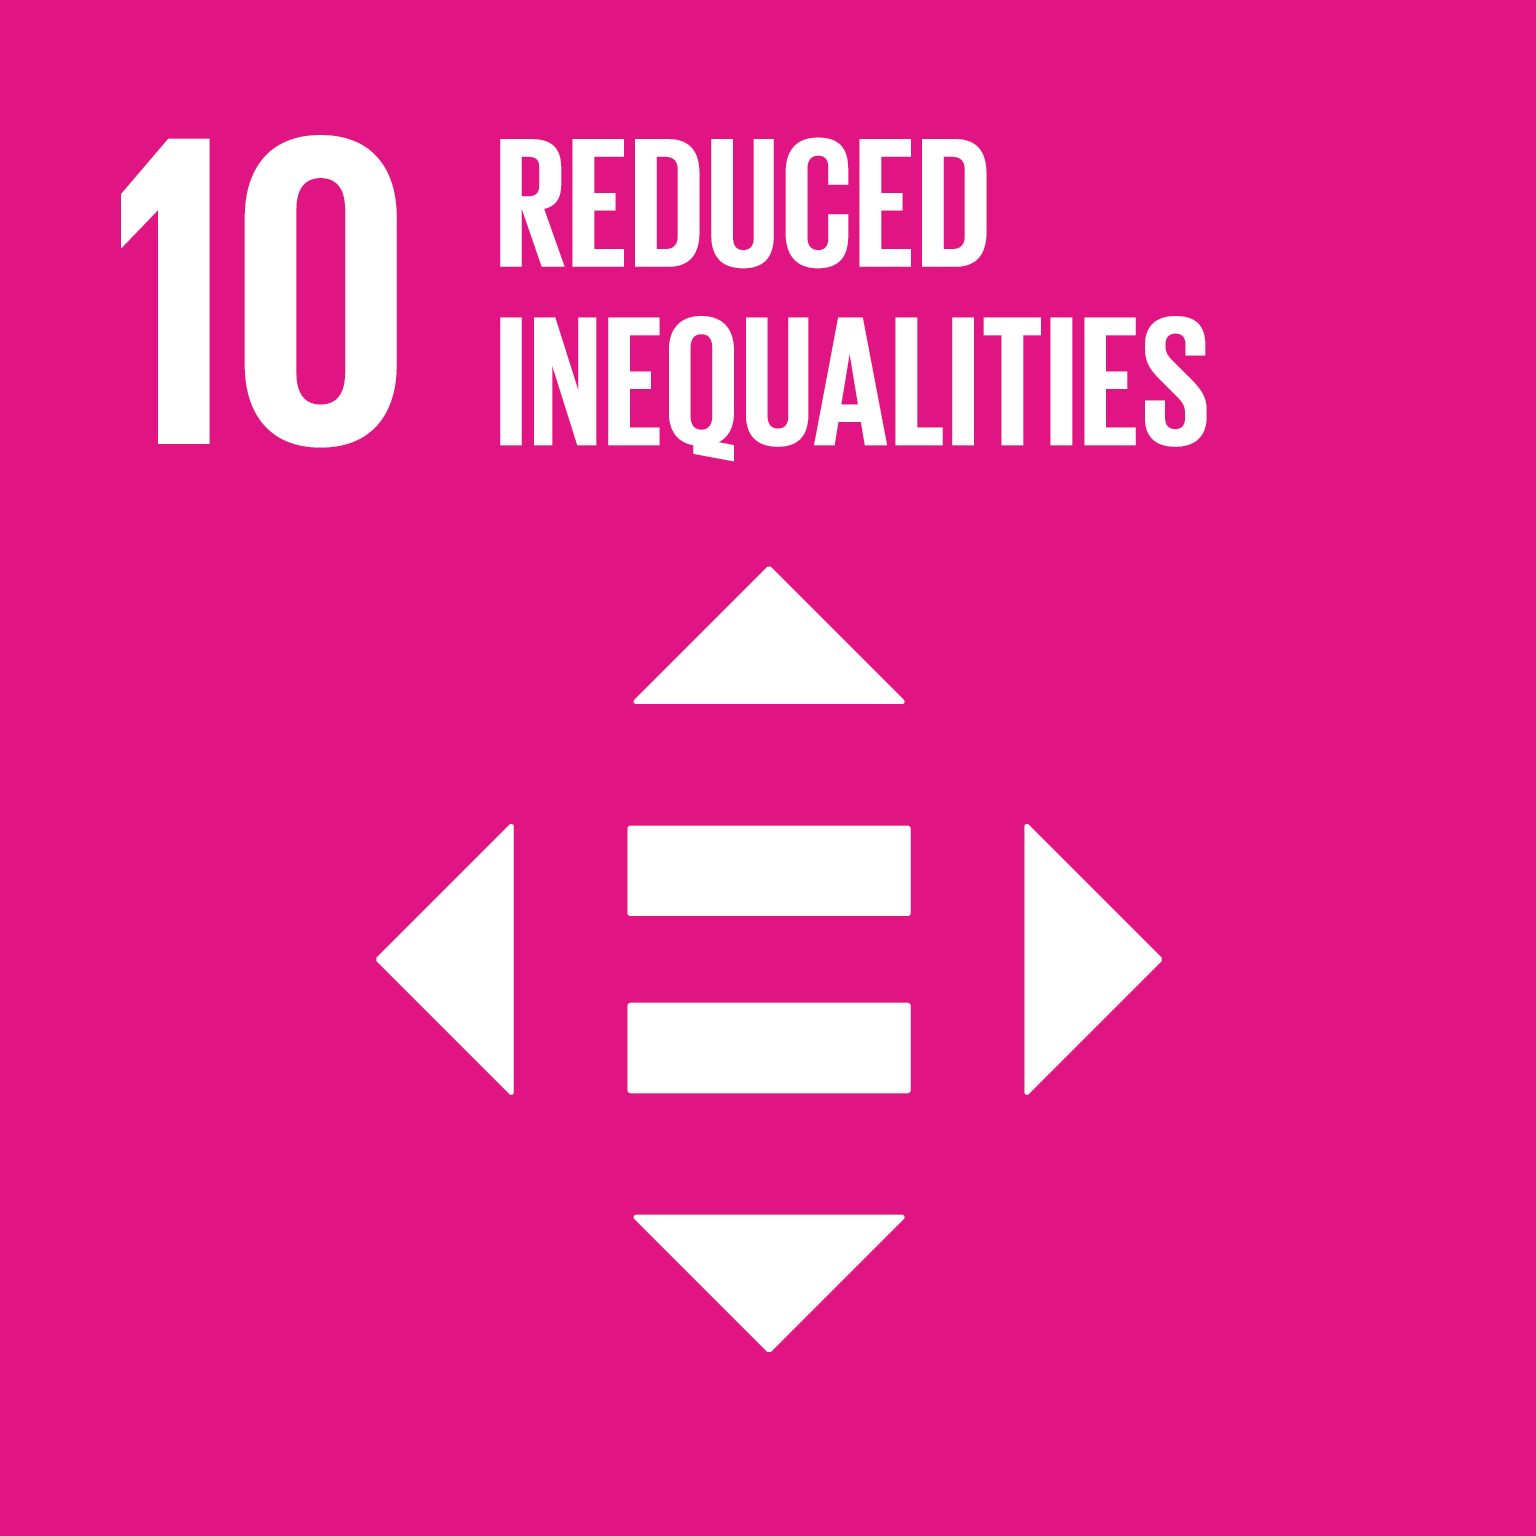 Afbeeldingsresultaat voor sustainable development goals 10